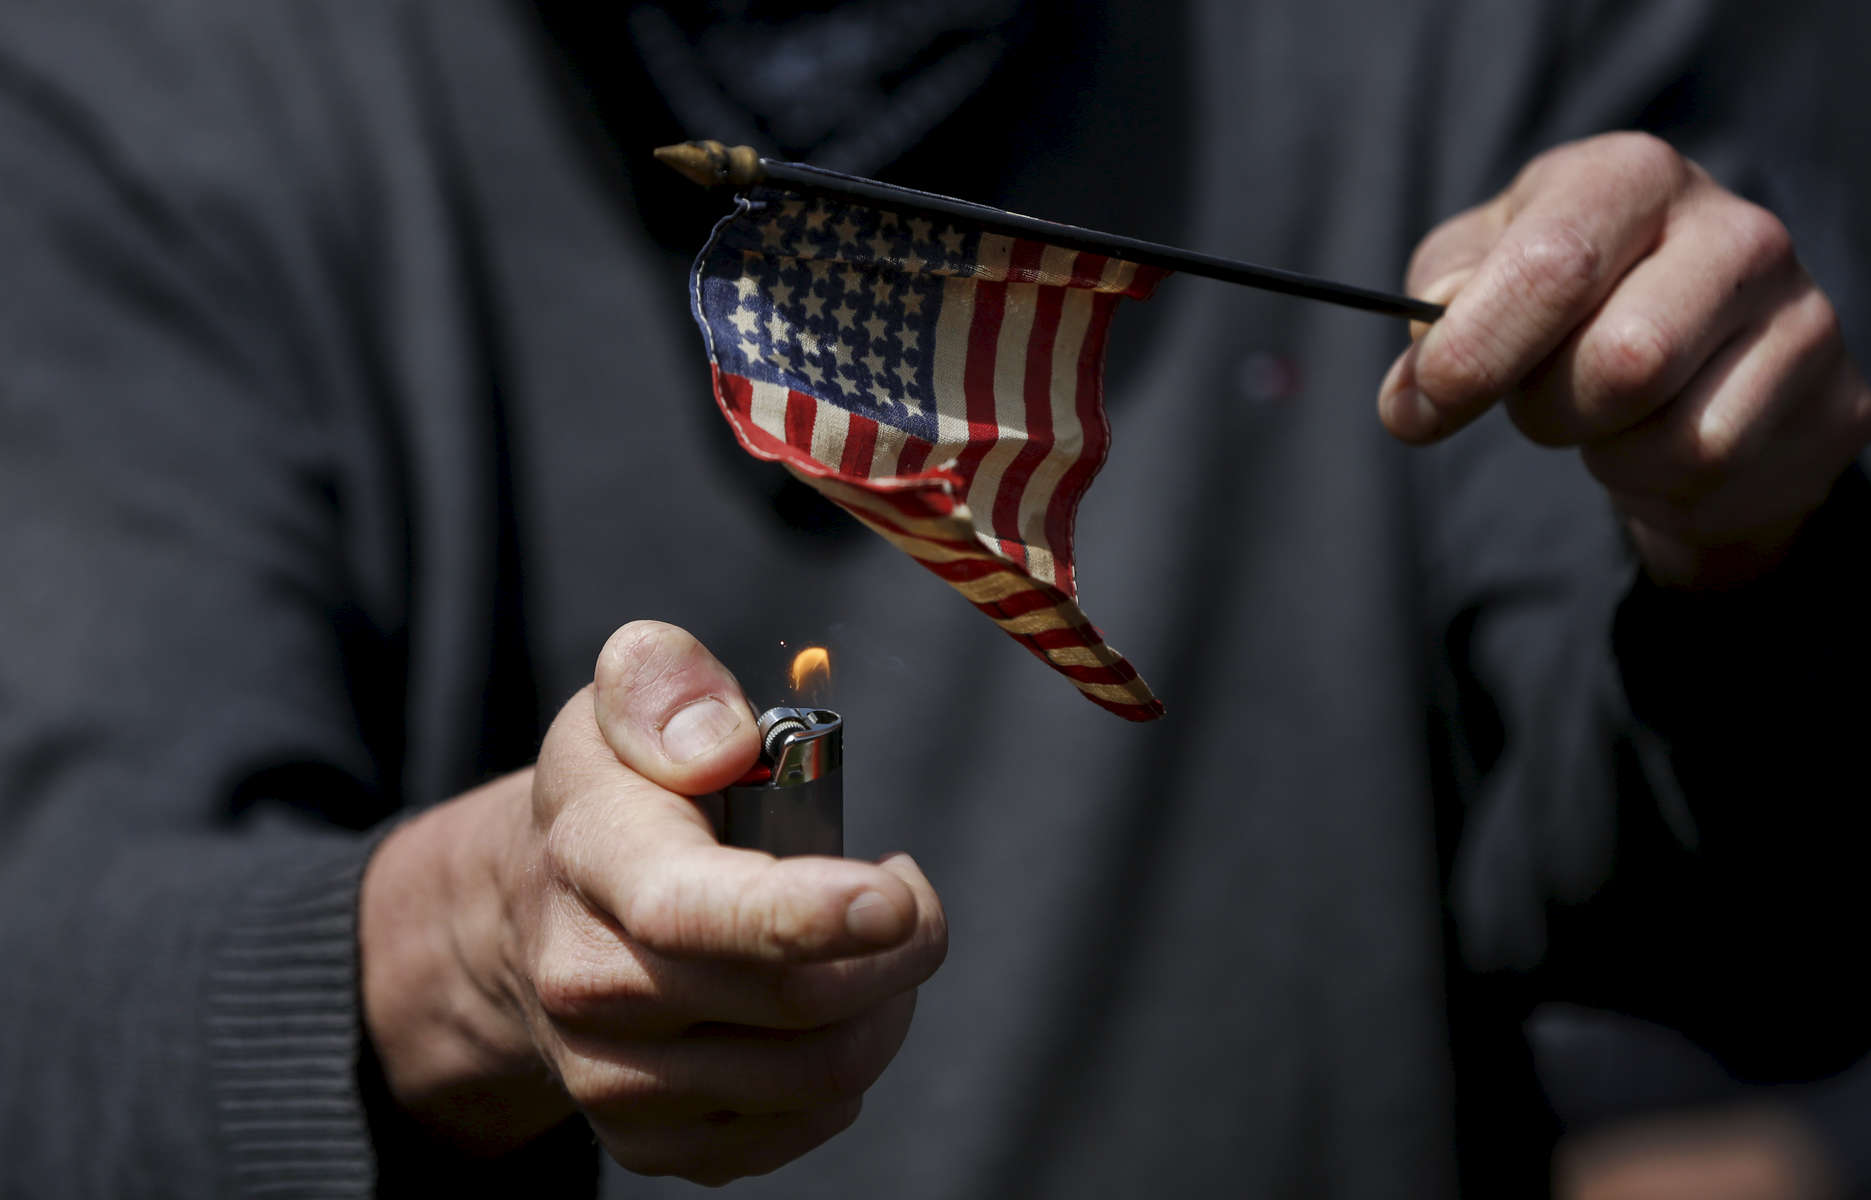 A man attempts to burn a flag while standing with anti-fascist protesters before a rally called {quote}Patriot's Day Free Speech Rally{quote} in Martin Luther King Jr. Civic Center Park April 15, 2017 in Berkeley, Calif.